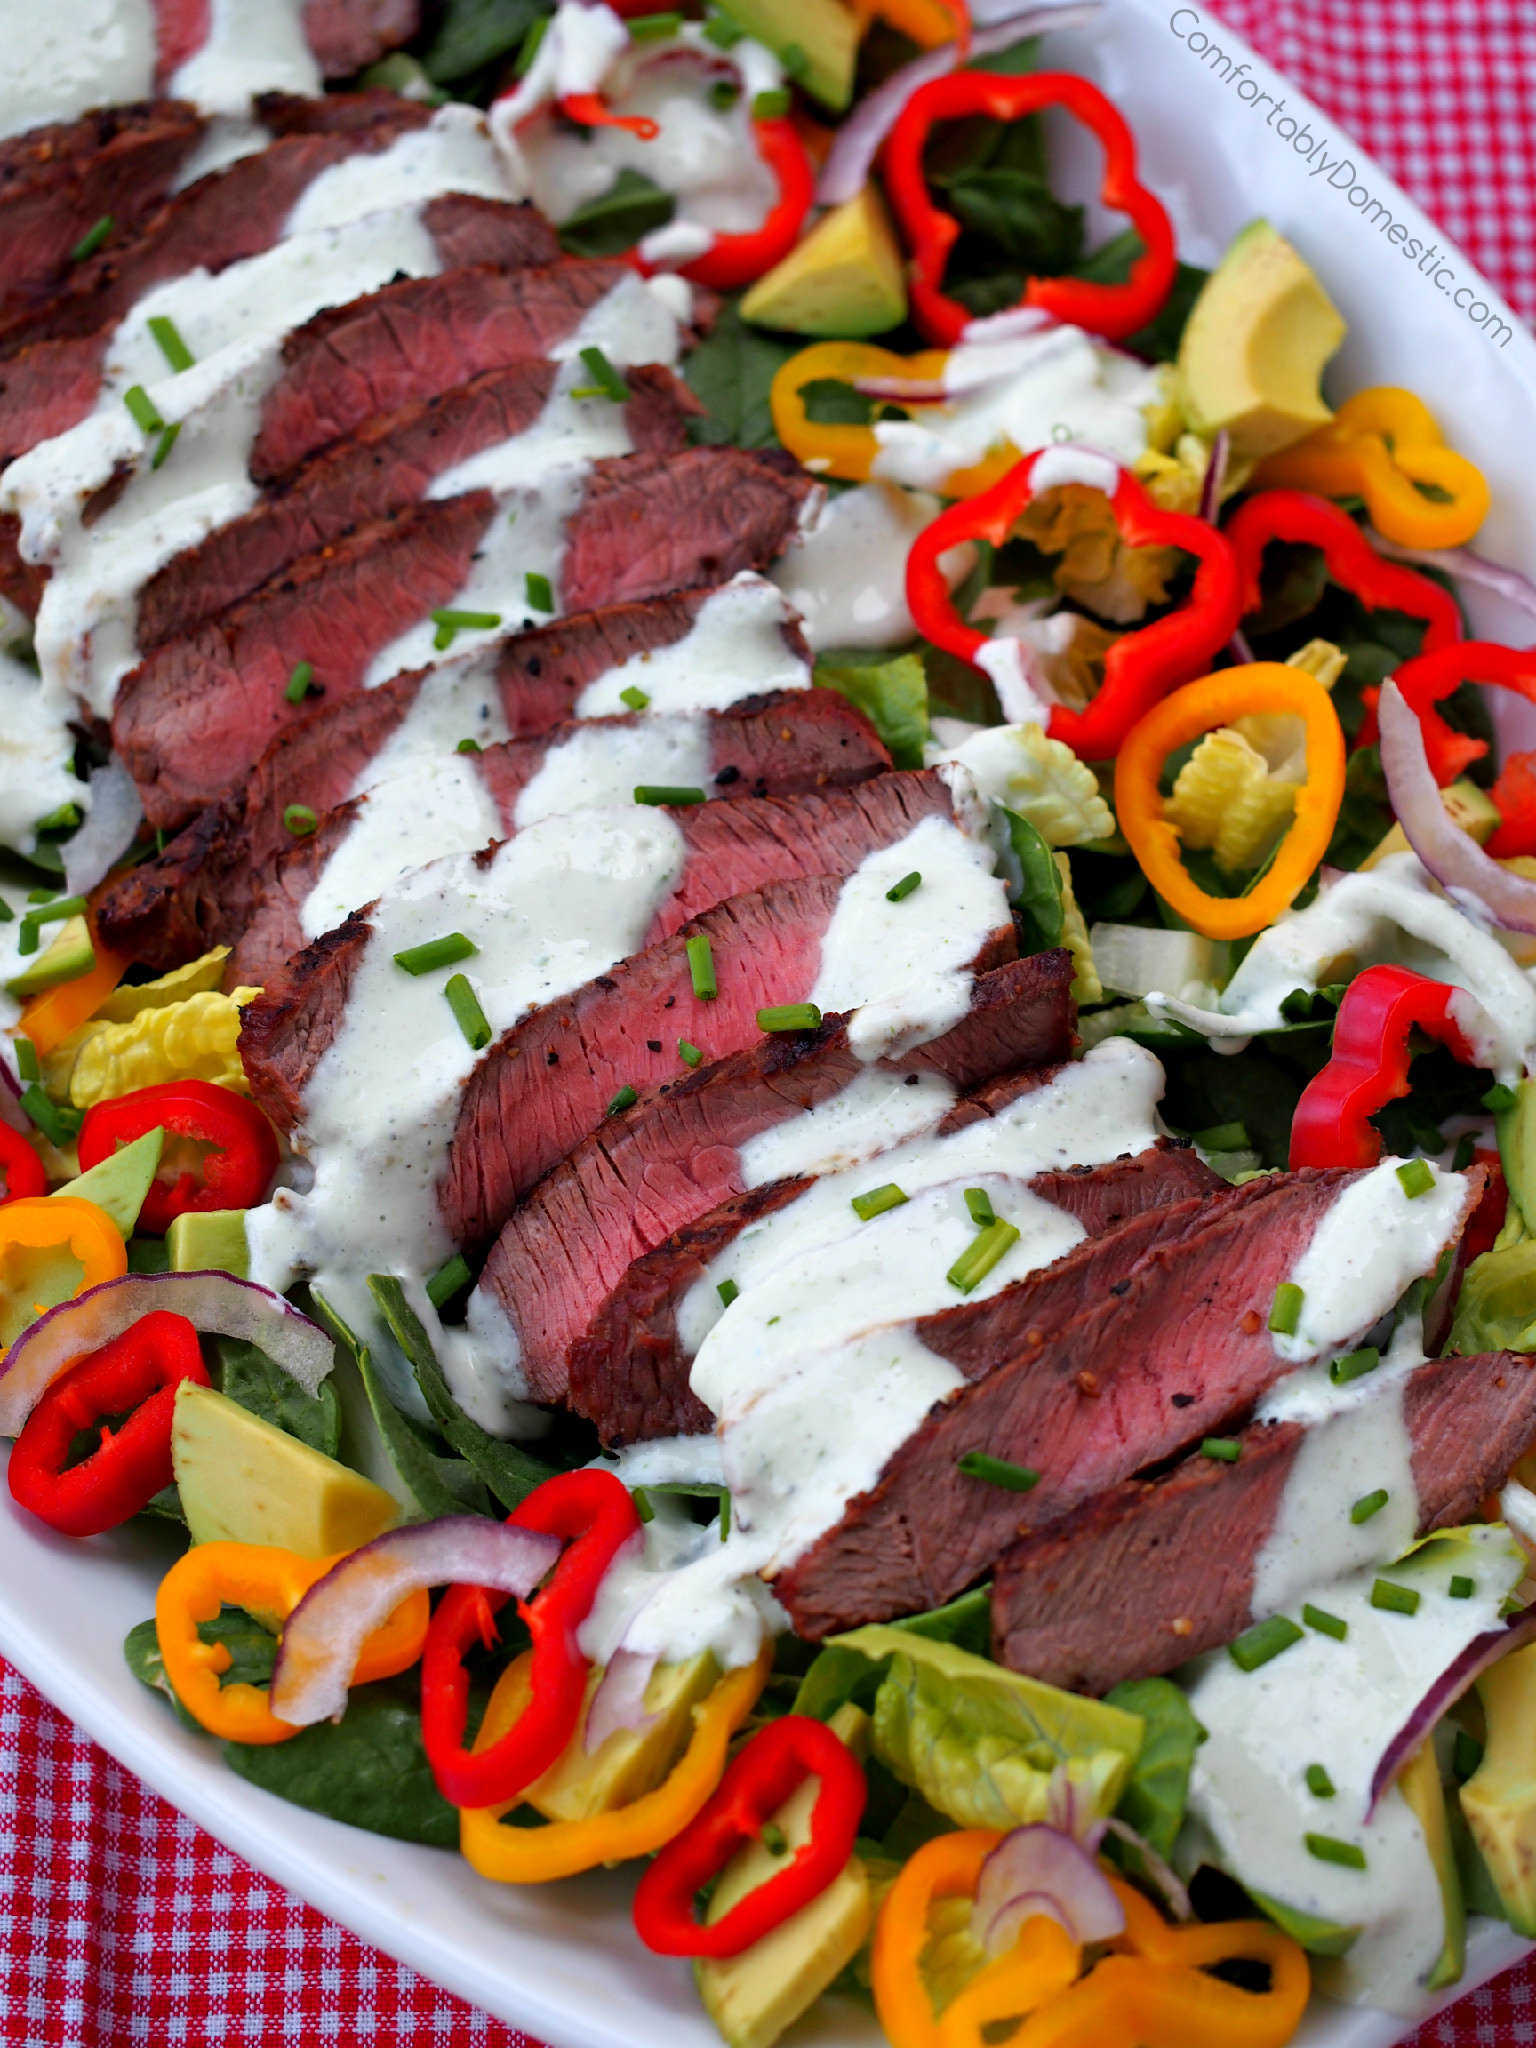 Grilled Steak Salad - Grilled steak sliced over colorful greens, sweet bell peppers, avocado, and thinly shaved red onion Drizzled with healthy, flavorful chive yogurt dressing.   ComfortablyDomestic.com